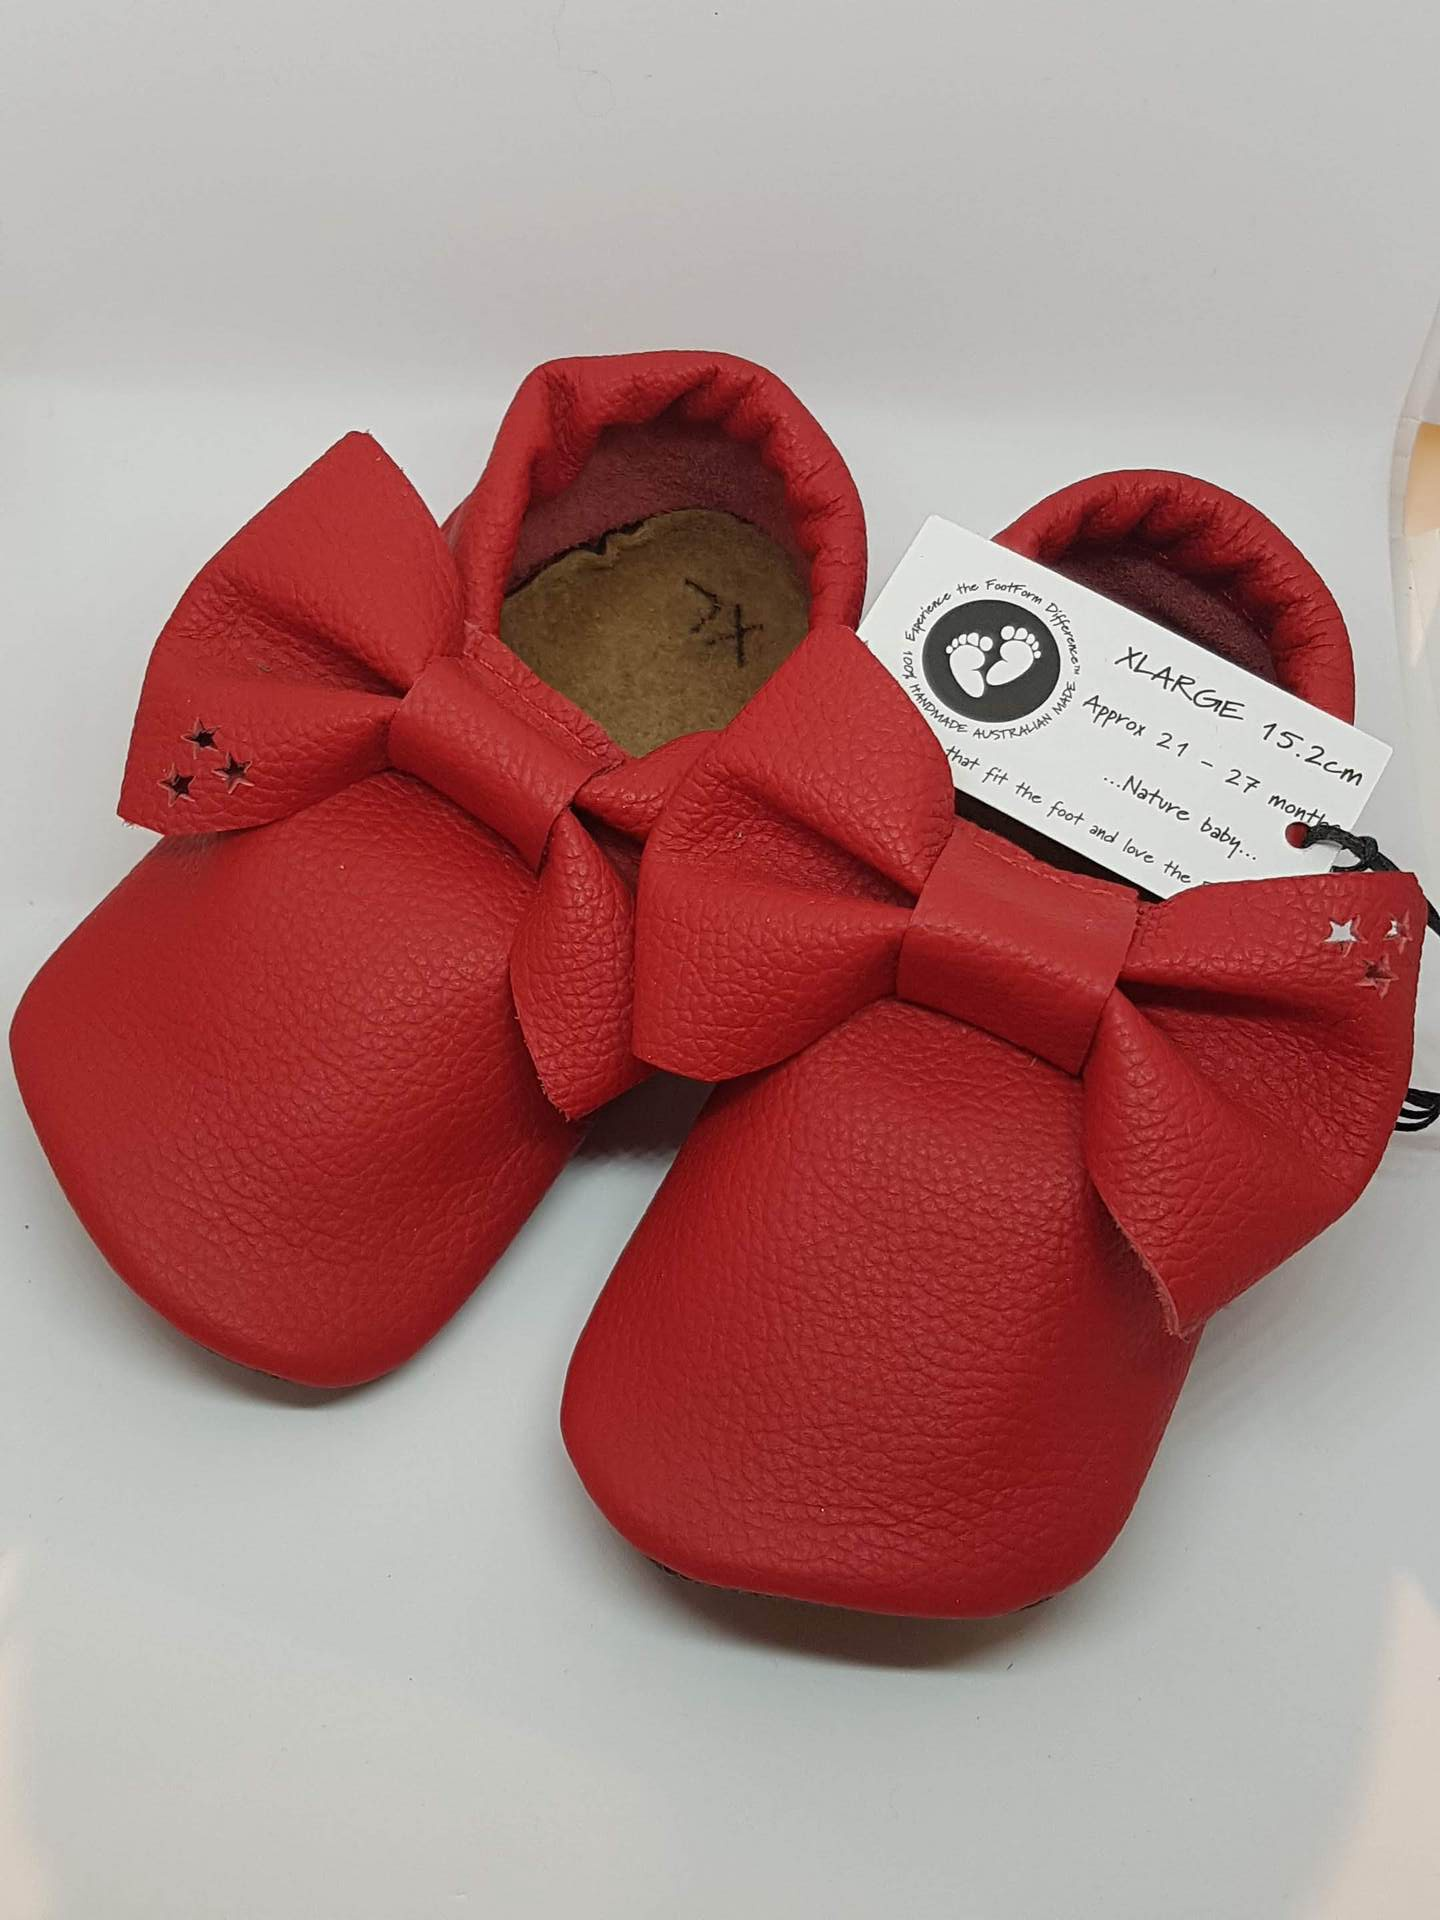 Red Leather Bow Moccasins - Large - fits approx15-21 months